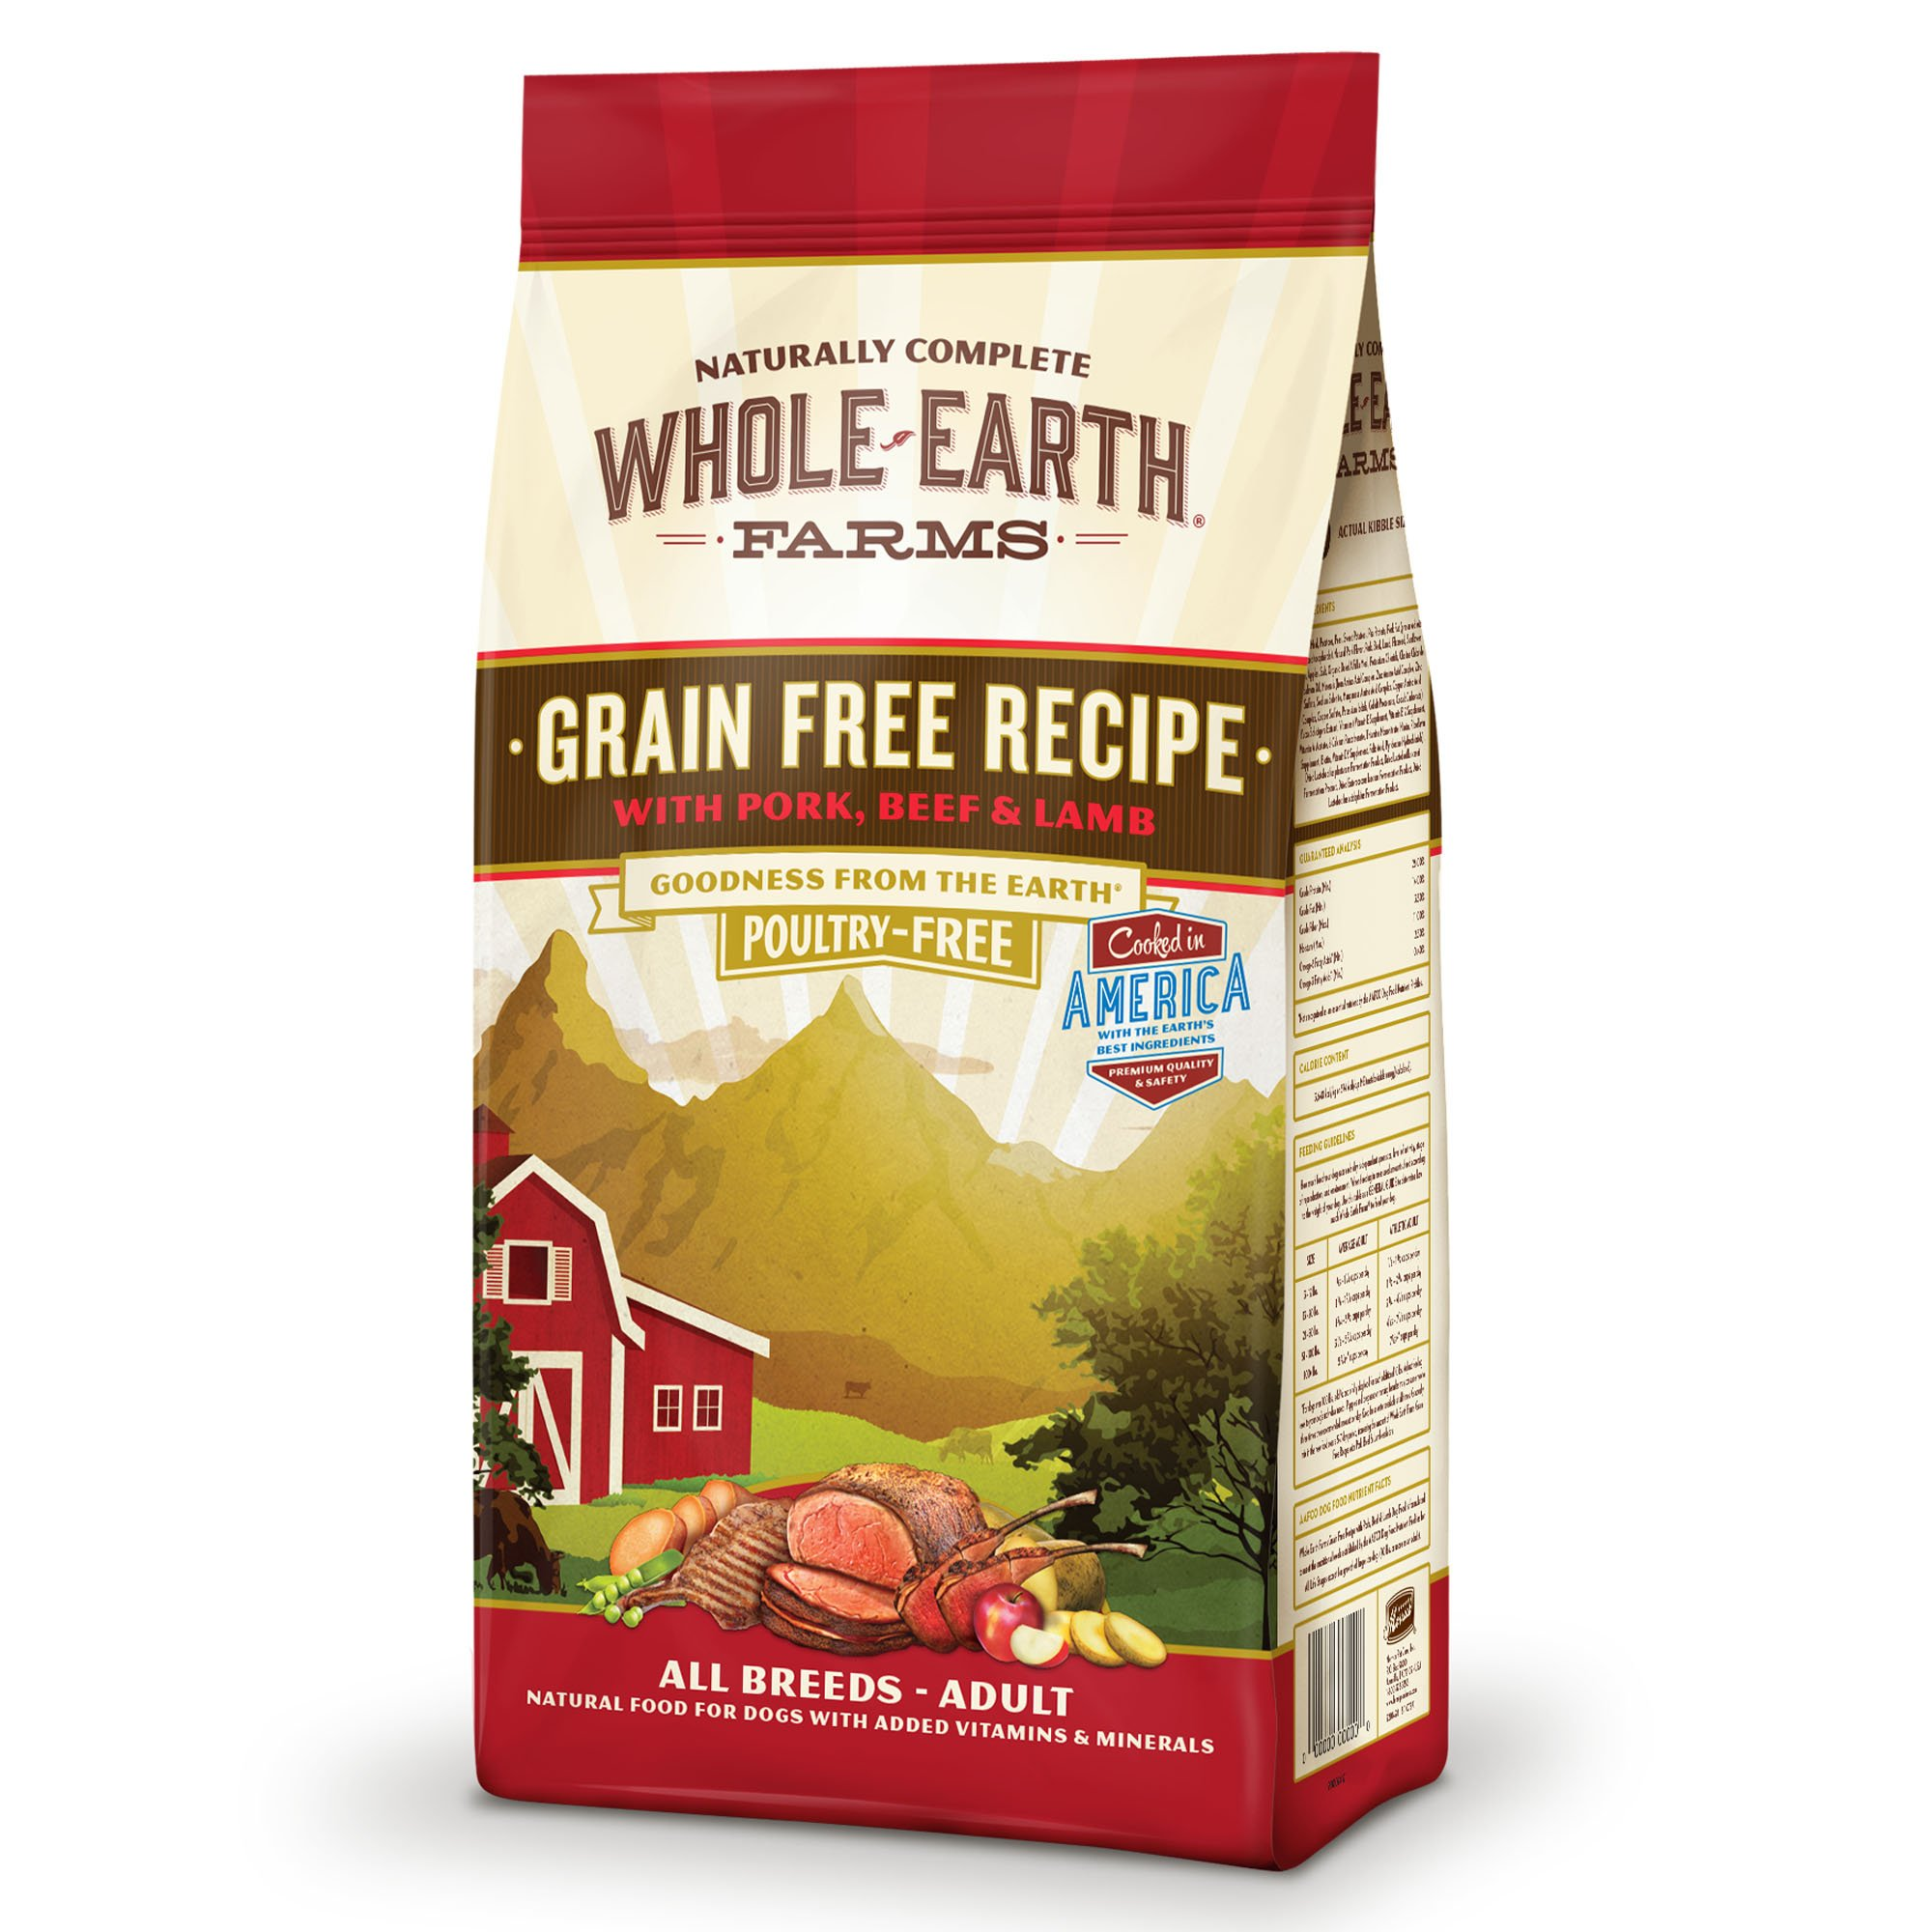 Whole earth farms grain free recipe with pork beef lamb dry dog whole earth farms grain free recipe with pork beef lamb dry dog food petco forumfinder Image collections